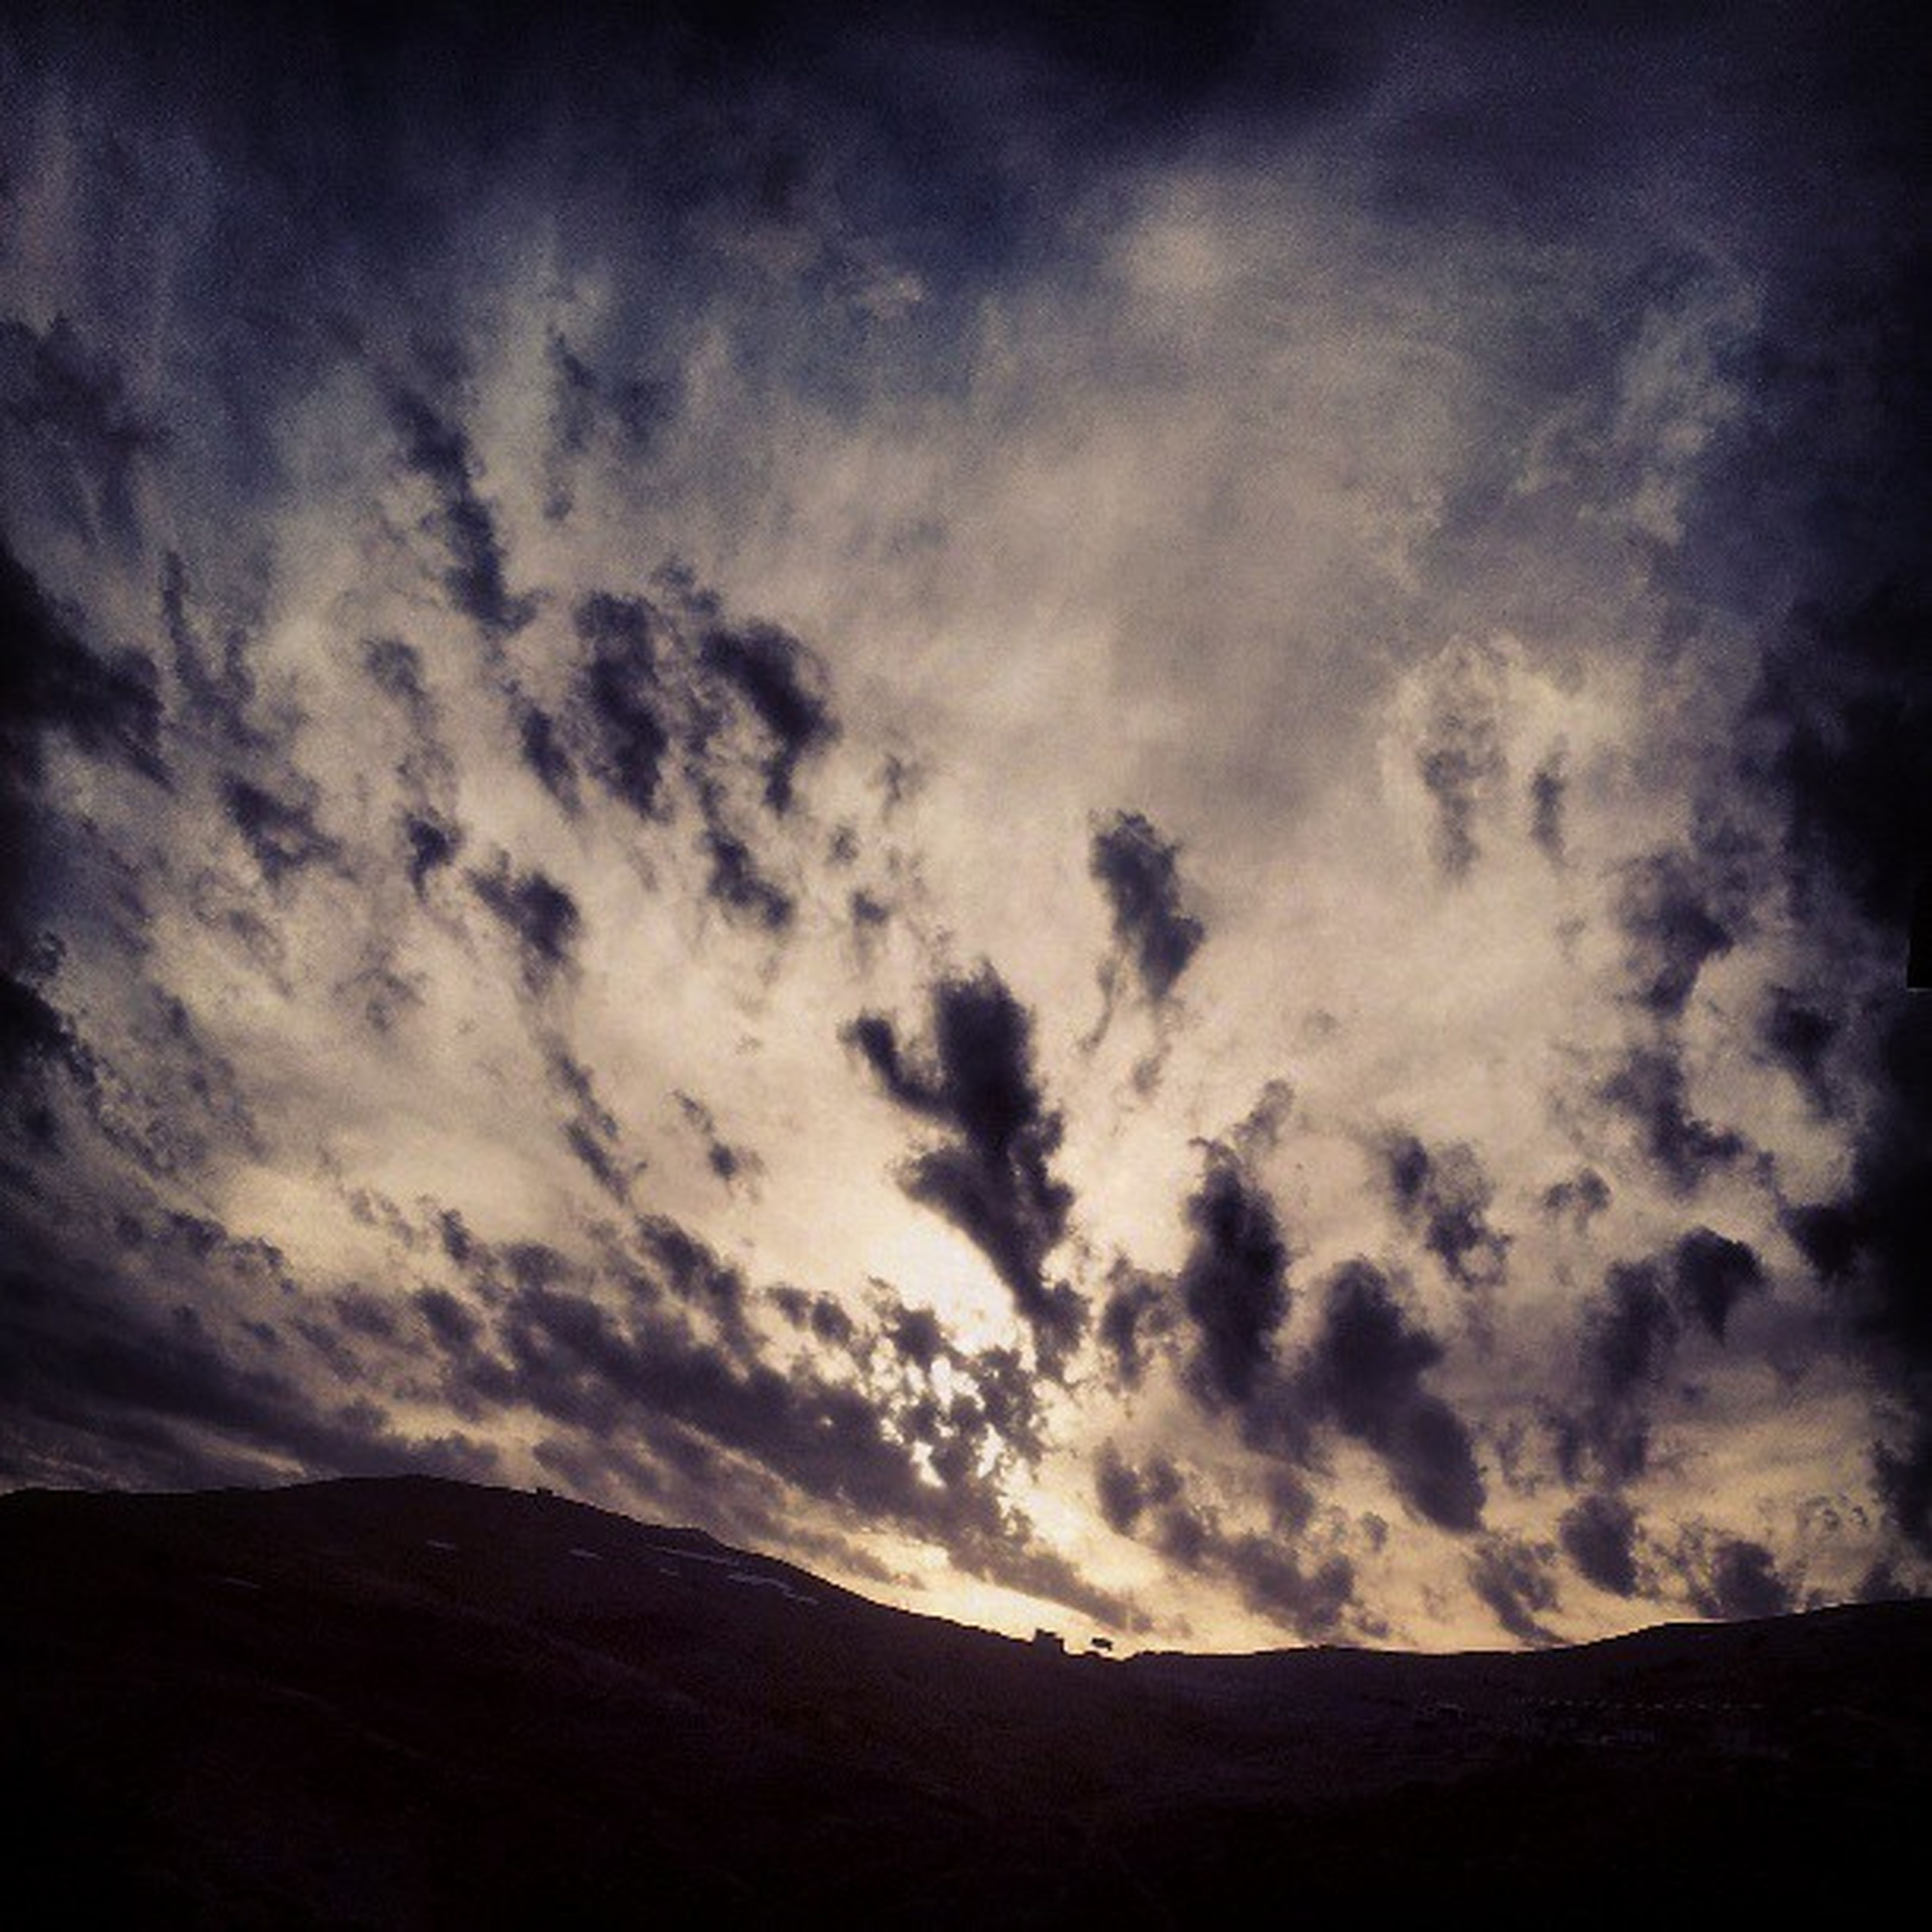 sky, tranquil scene, tranquility, scenics, cloud - sky, beauty in nature, cloudy, nature, cloud, landscape, low angle view, silhouette, mountain, idyllic, outdoors, non-urban scene, remote, no people, weather, dusk